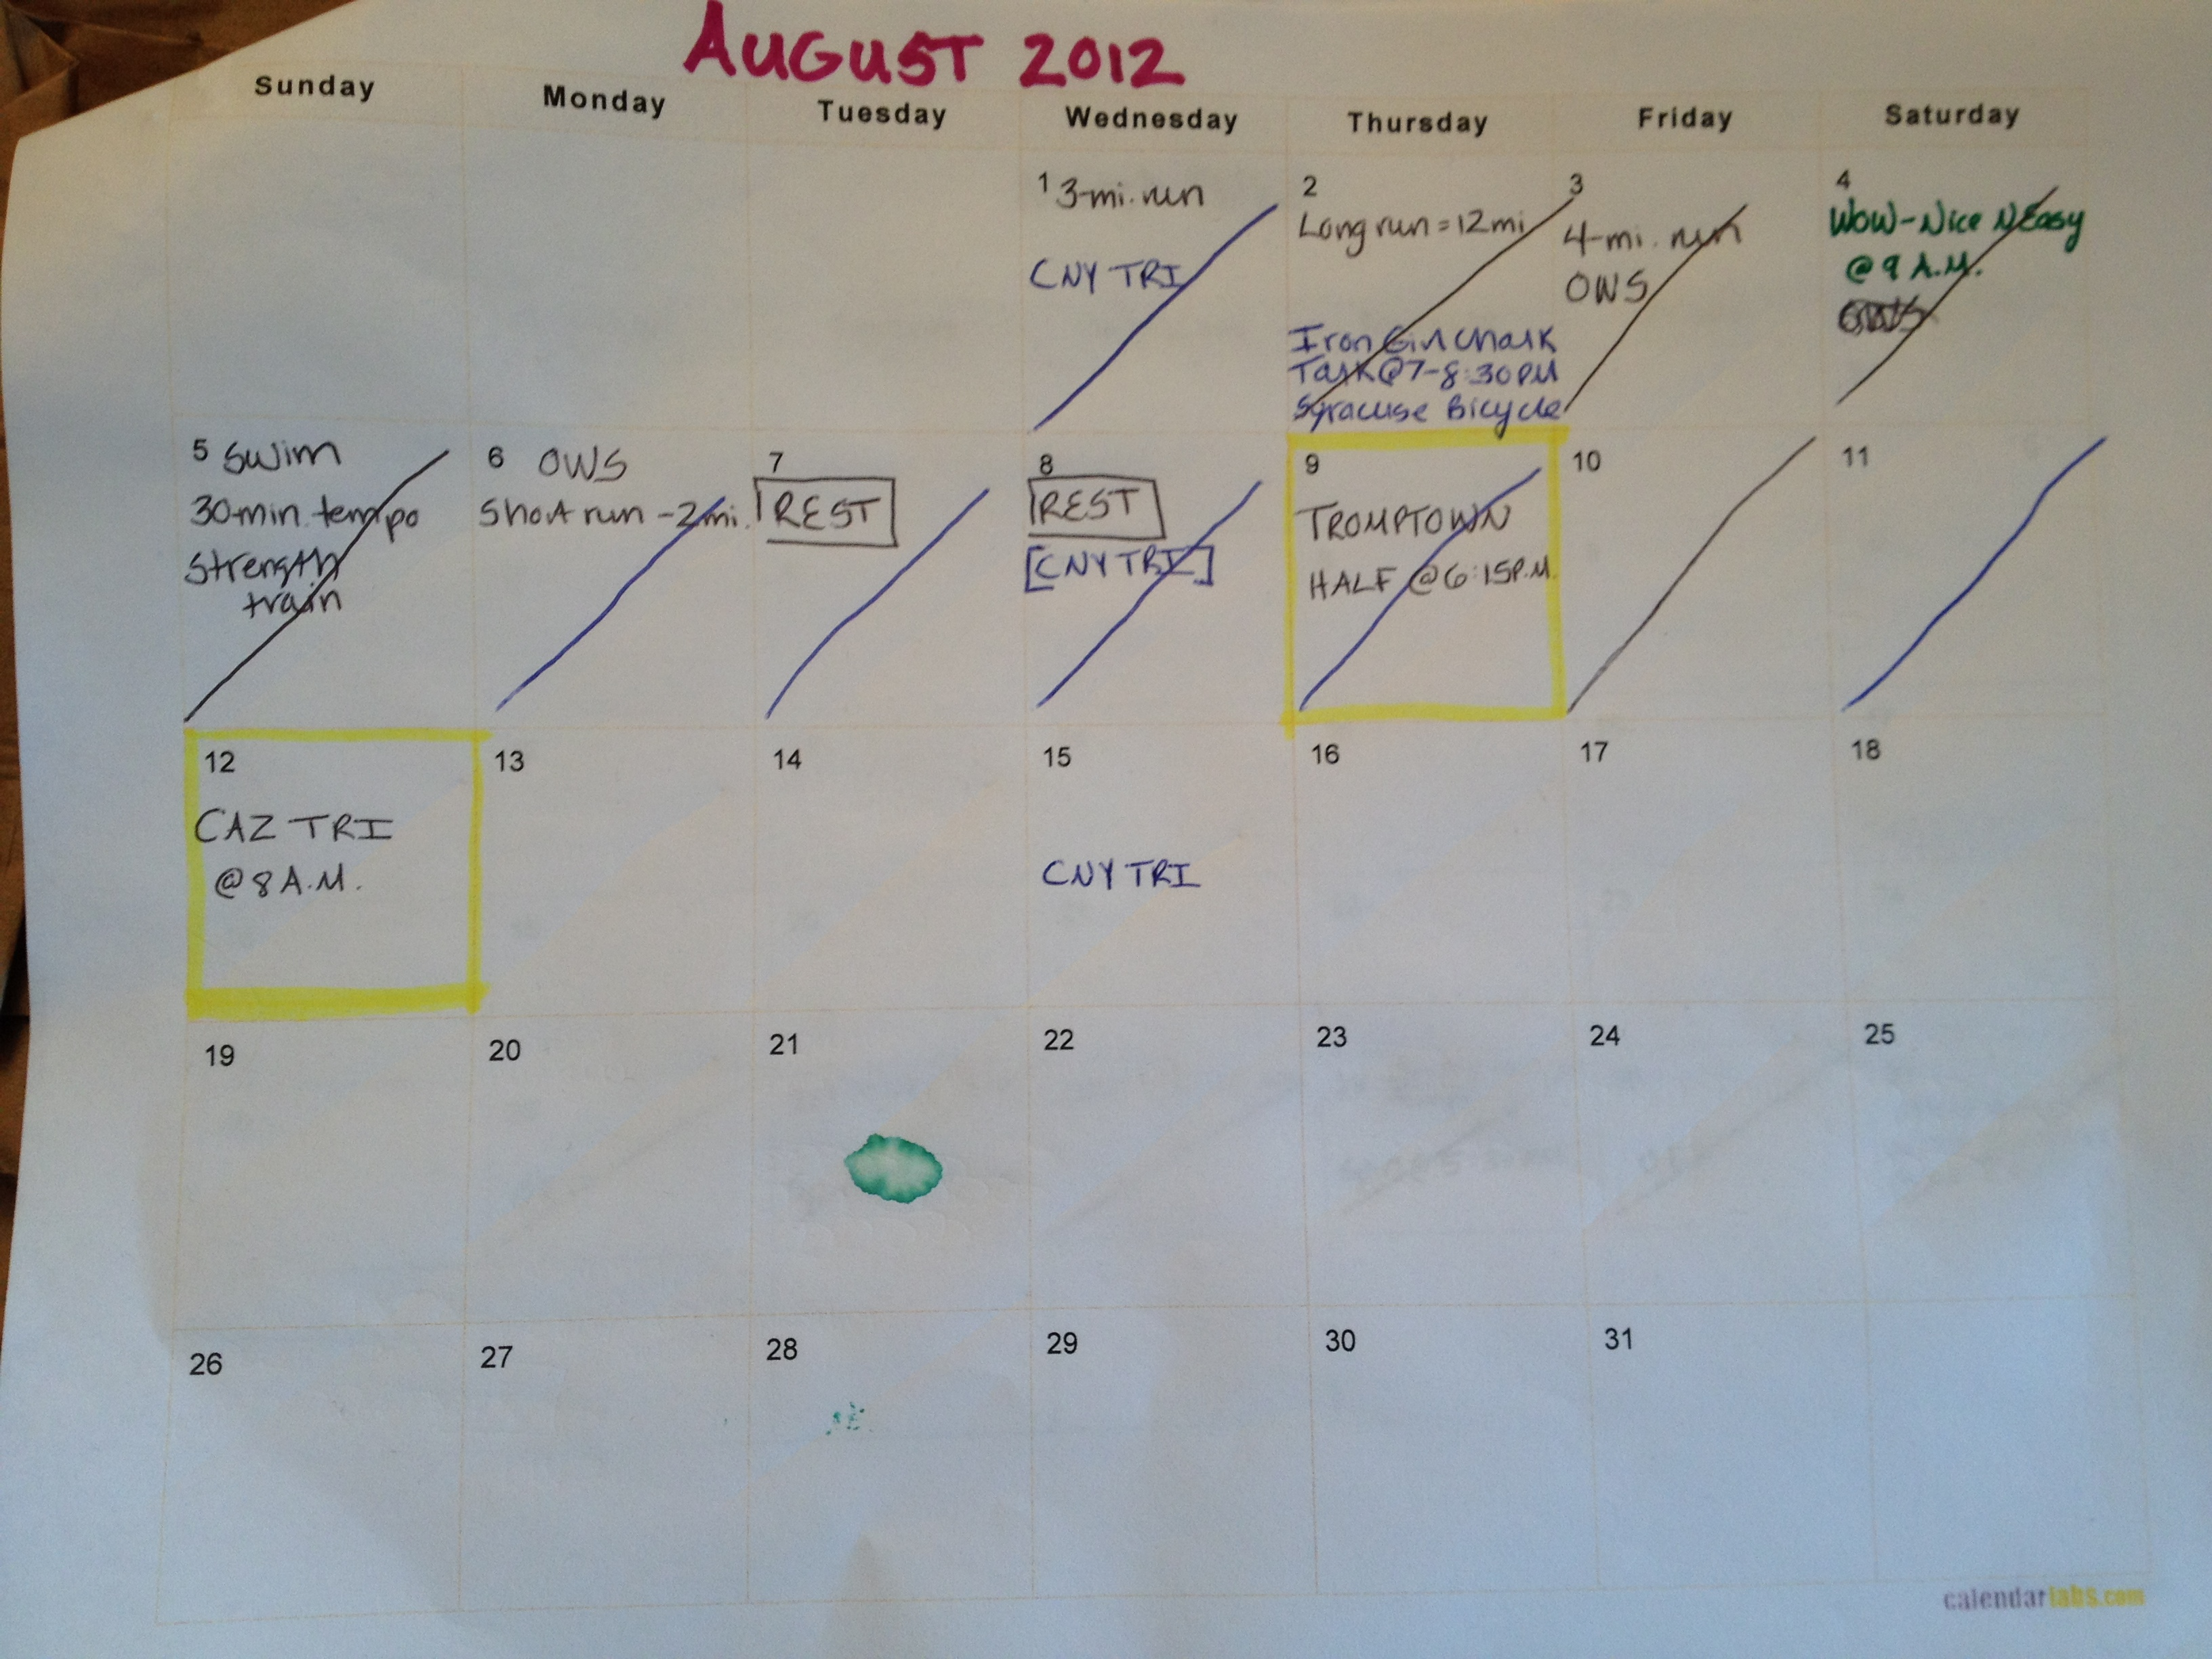 Last Sunday In August Felt More Like >> Write It Down Do It Up Week Of August 12 Fitness And Frozen Grapes